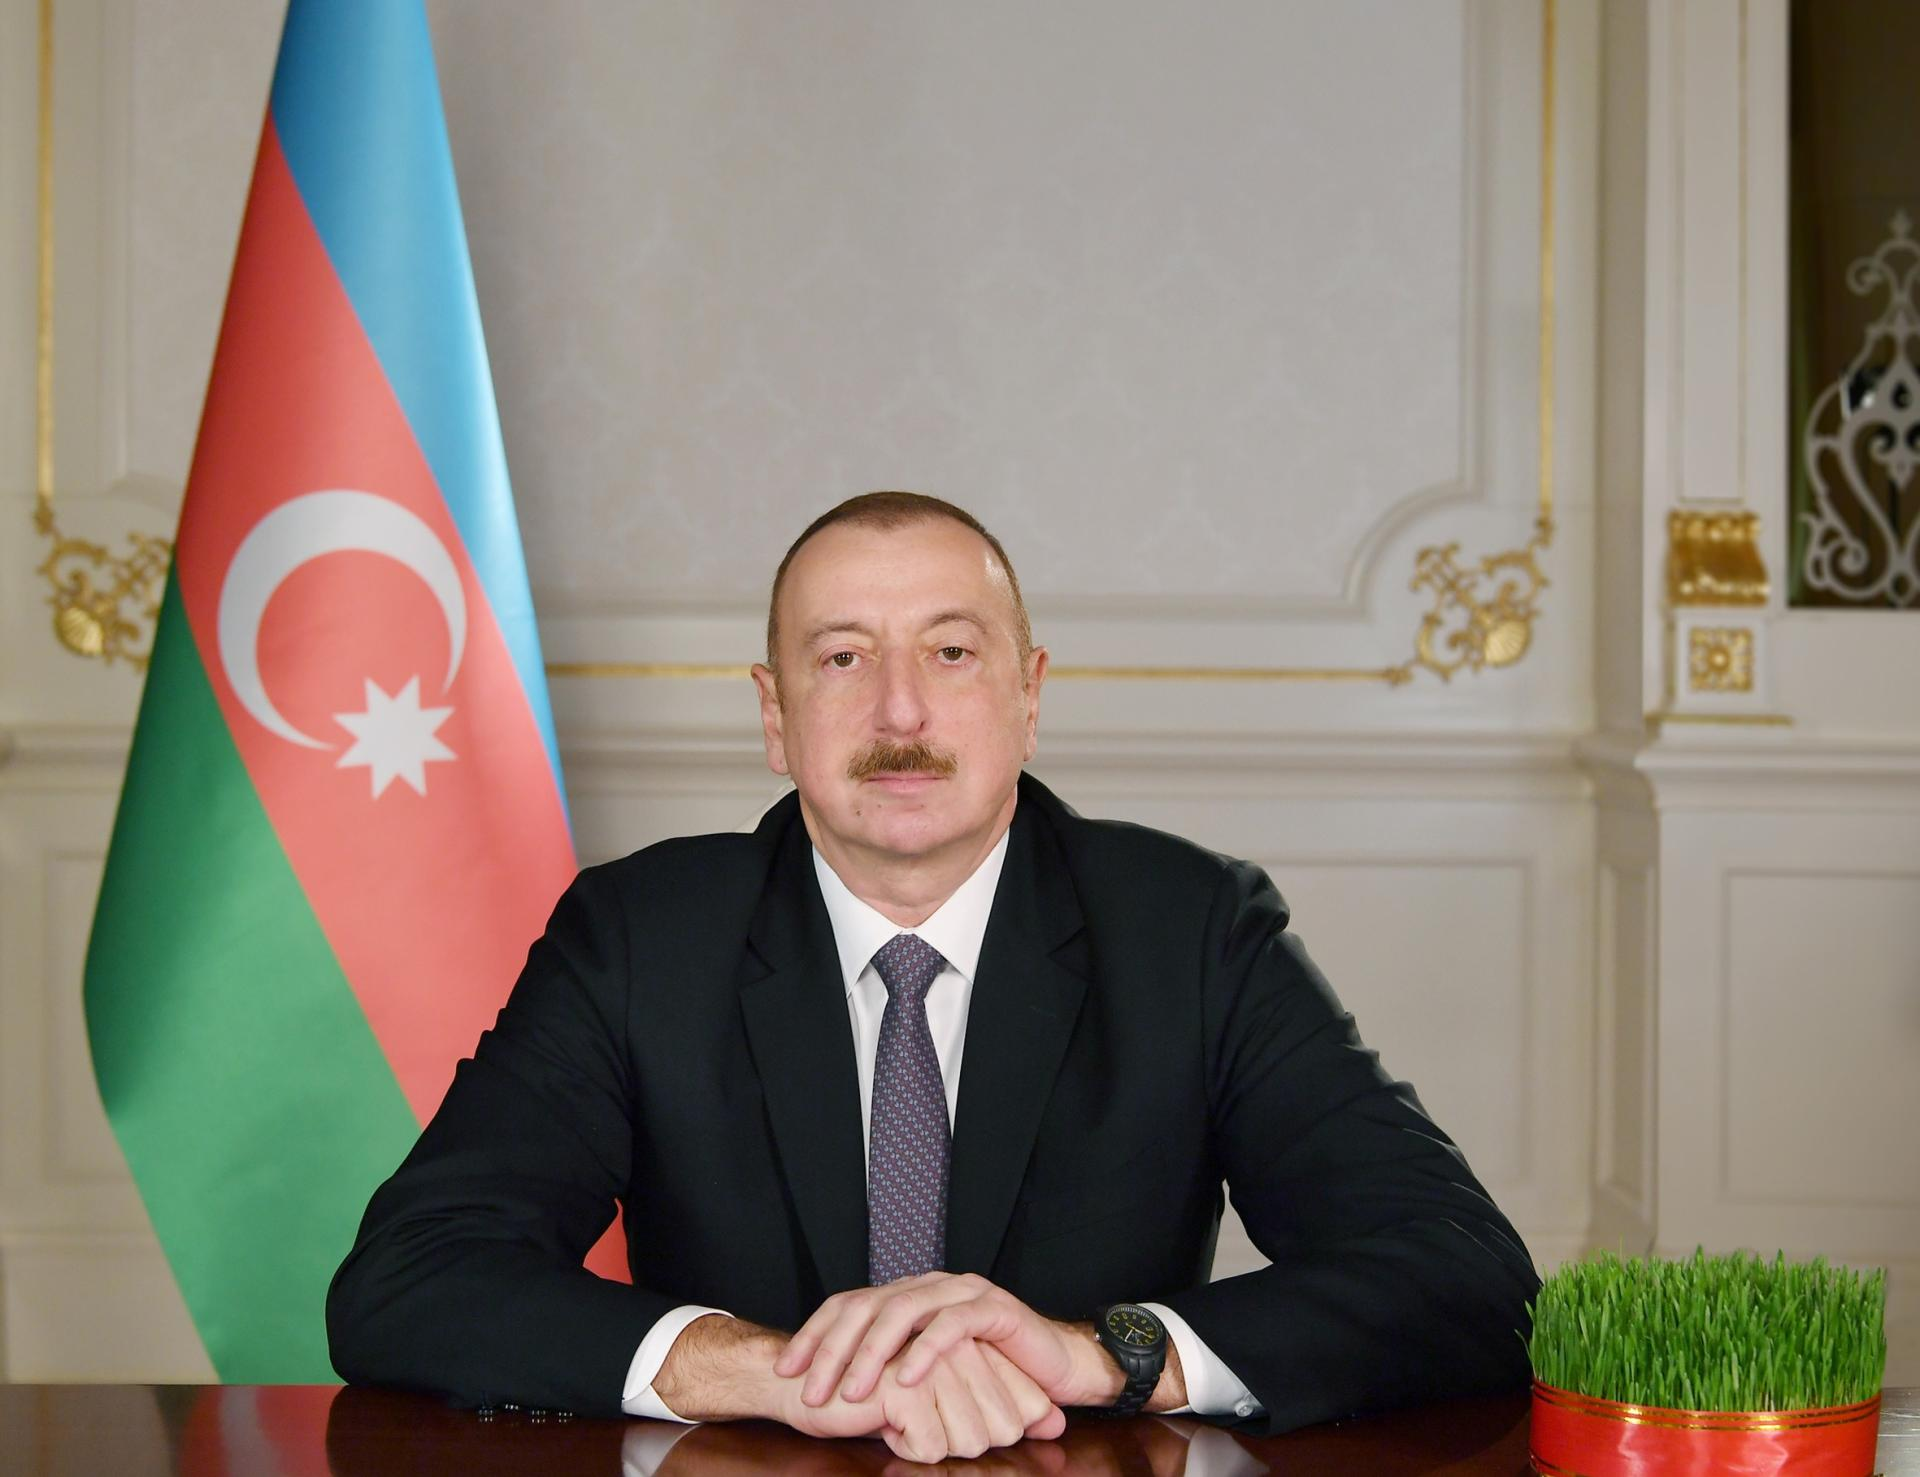 WHO Director-General sends a letter to Ilham Aliyev